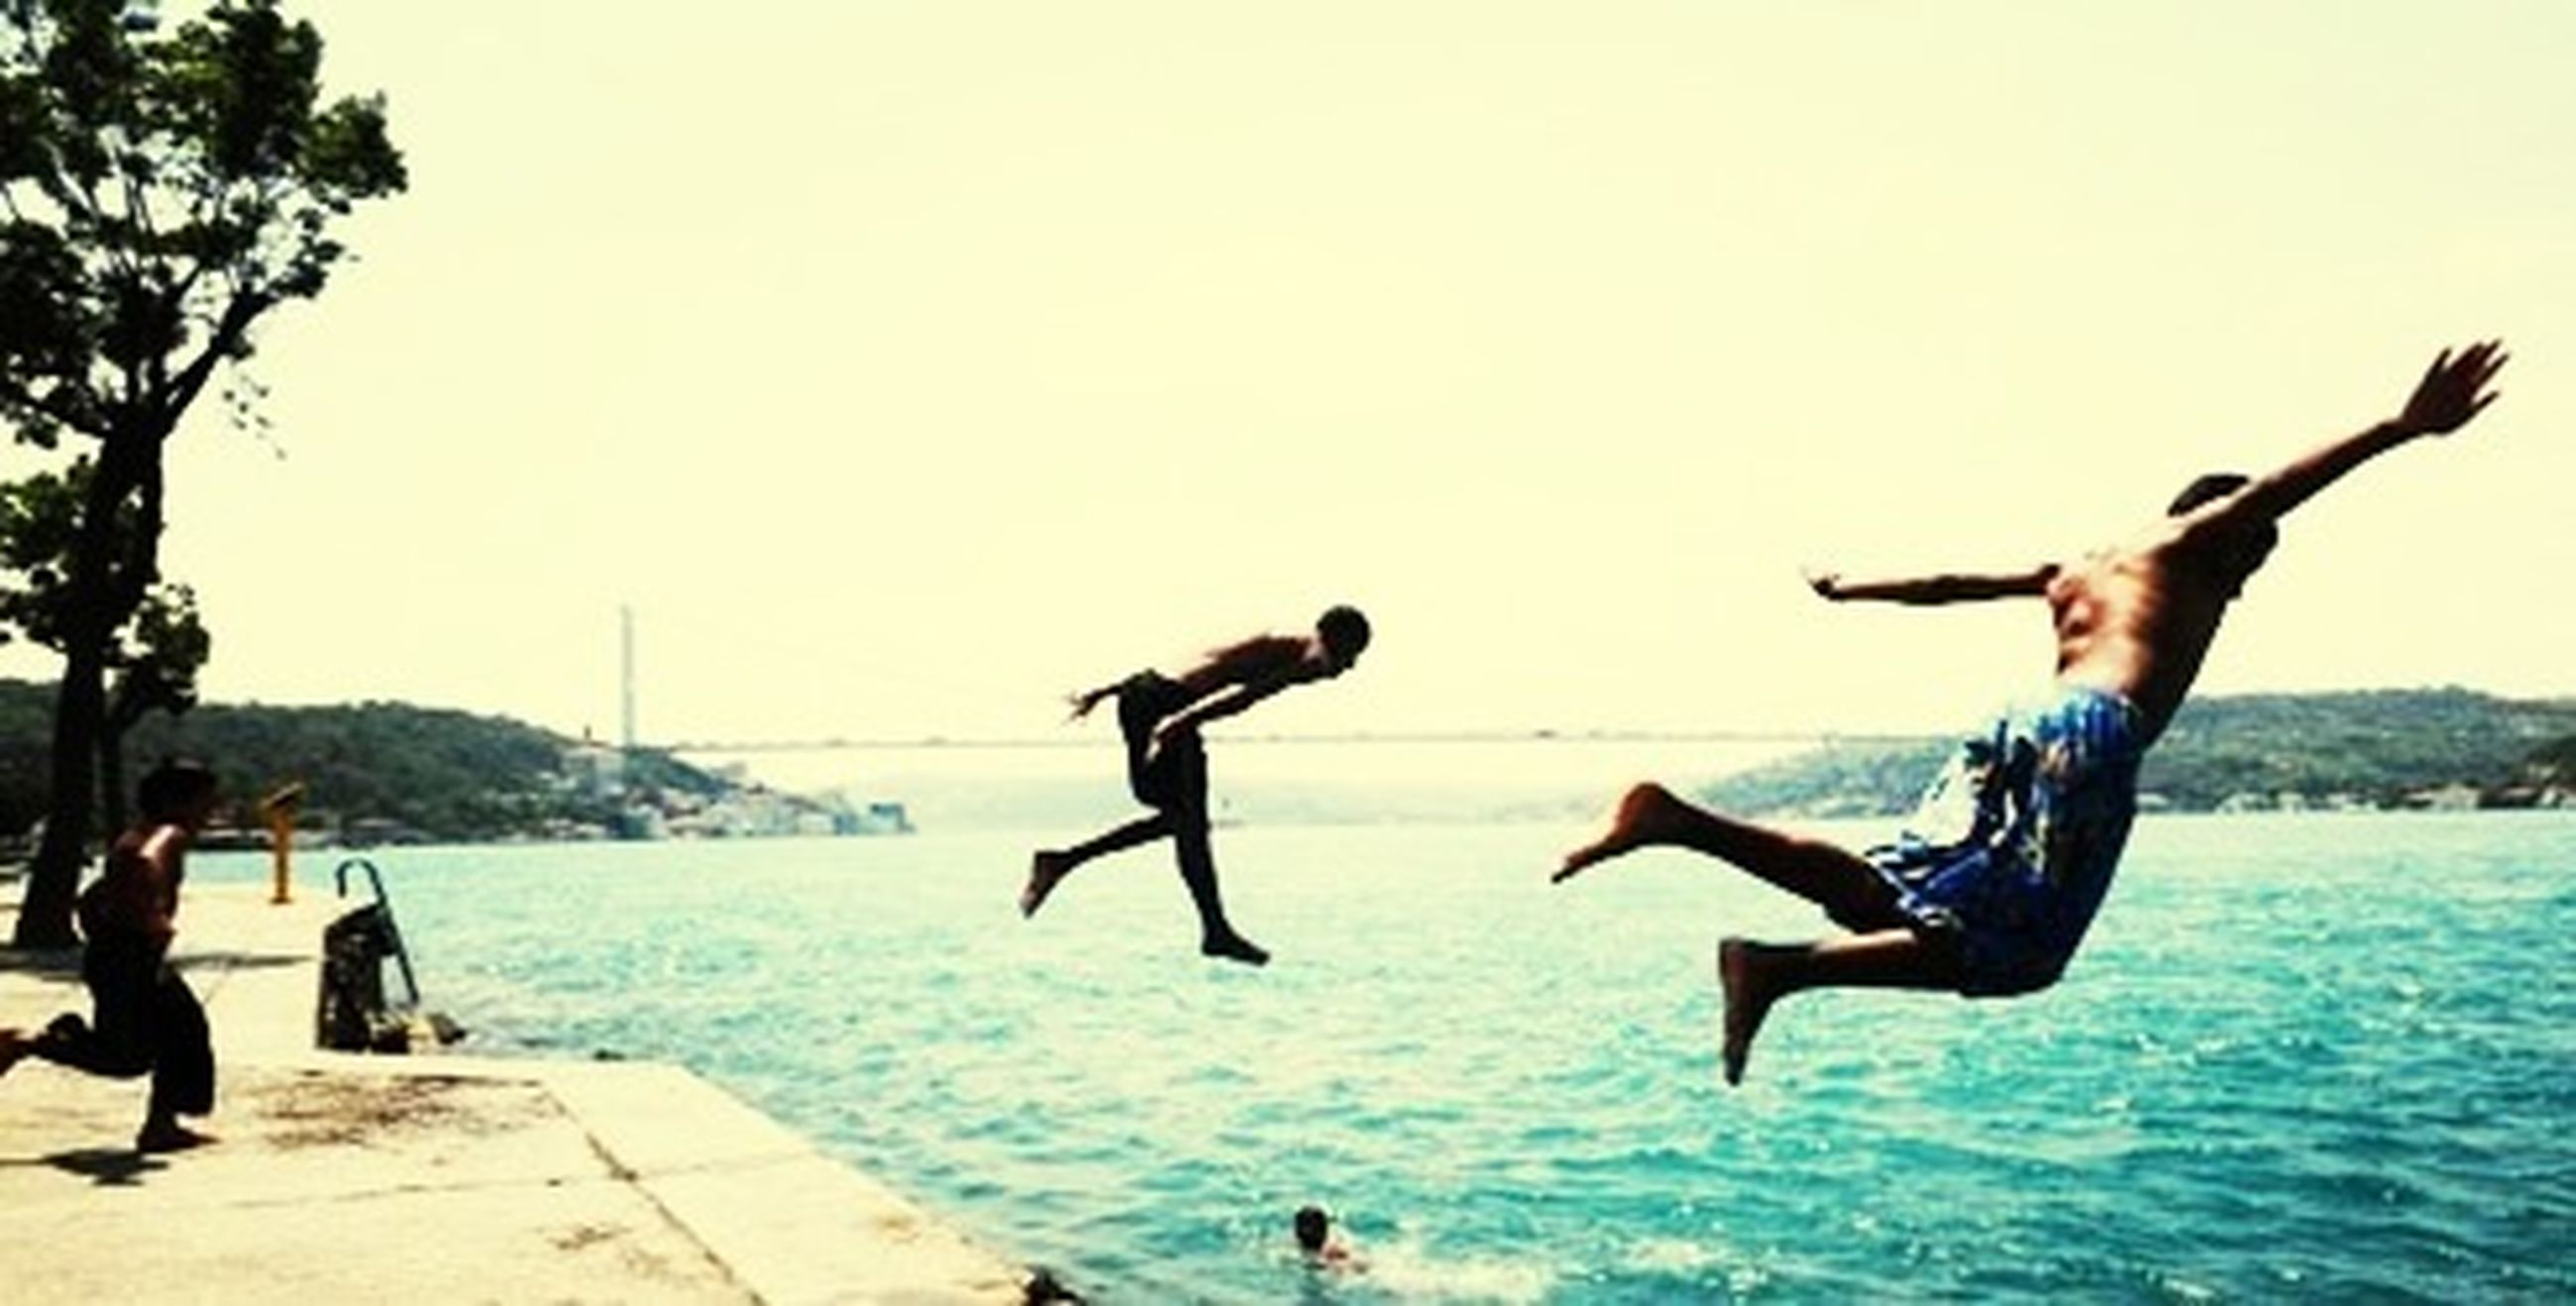 water, lifestyles, leisure activity, sea, enjoyment, mid-air, fun, clear sky, men, full length, jumping, flying, beach, vacations, motion, person, large group of people, carefree